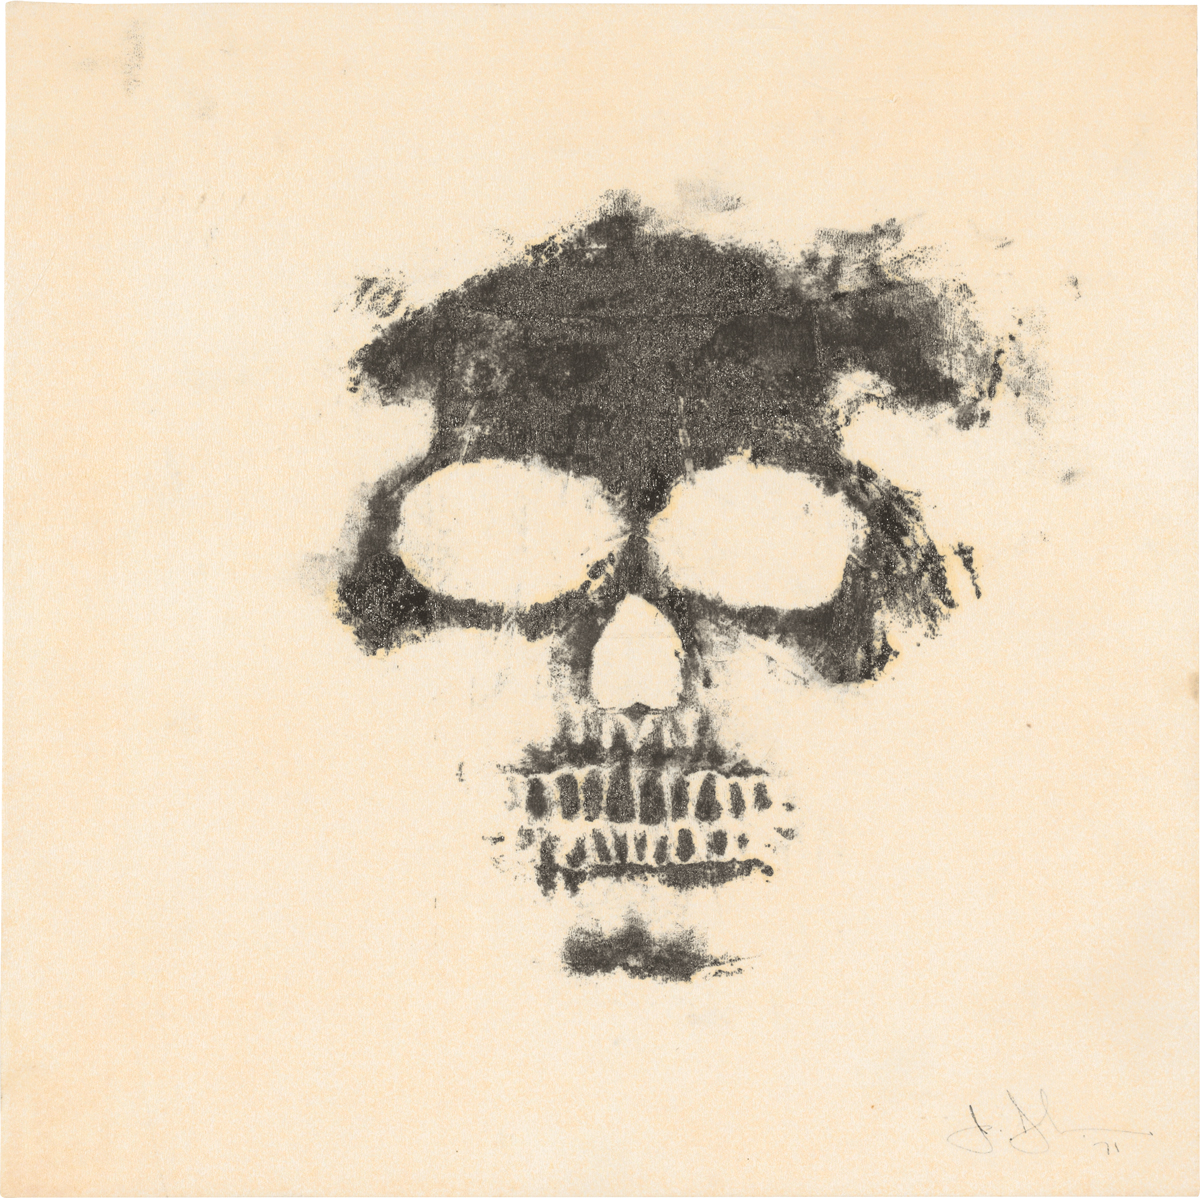 A somewhat incomplete black etching of a skull on creme papaer.